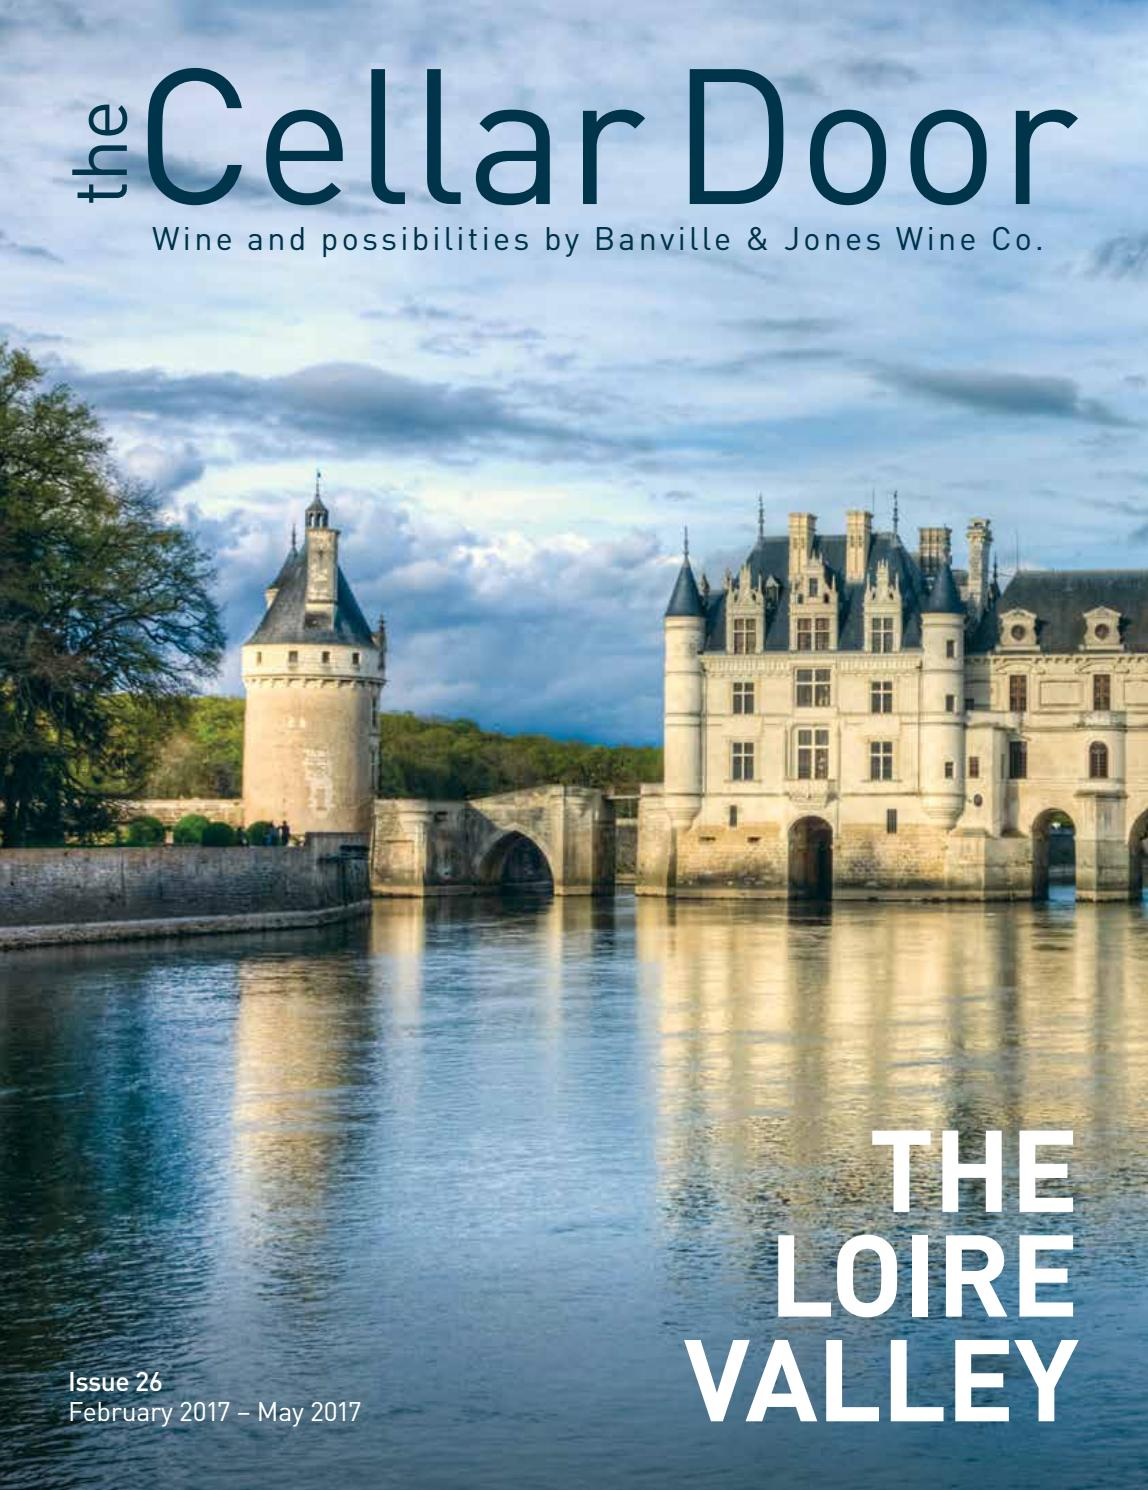 The Cellar Door Issue 26 Loire Valley By Poise Publications Issuu Millet Flagship Intelligent Household Water Purifiers